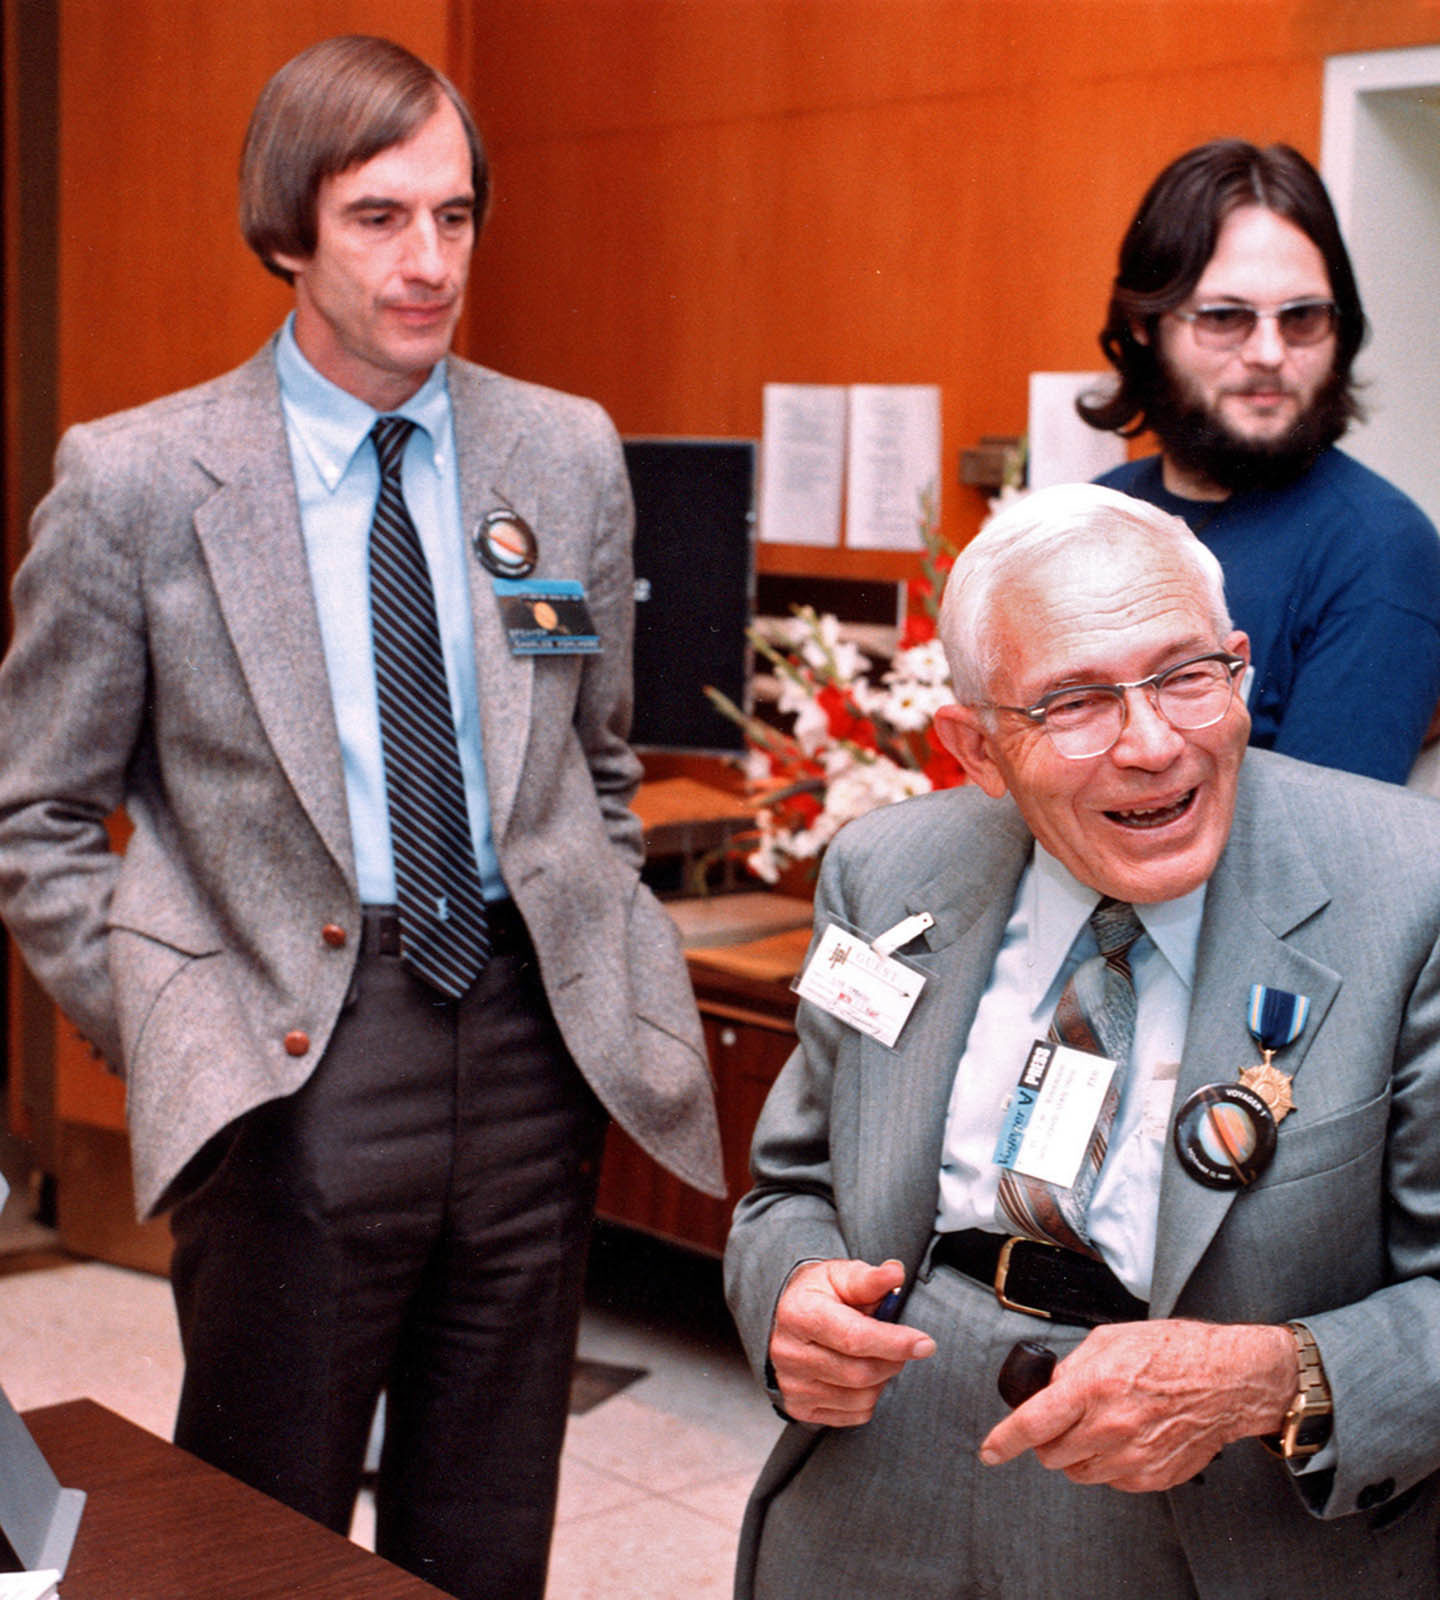 Kohlhase meets legendary astronomer, Clyde Tombaugh, discoverer of Pluto, at the Voyager Neptune encounter in August 1989. Credit: Charles Kohlhase